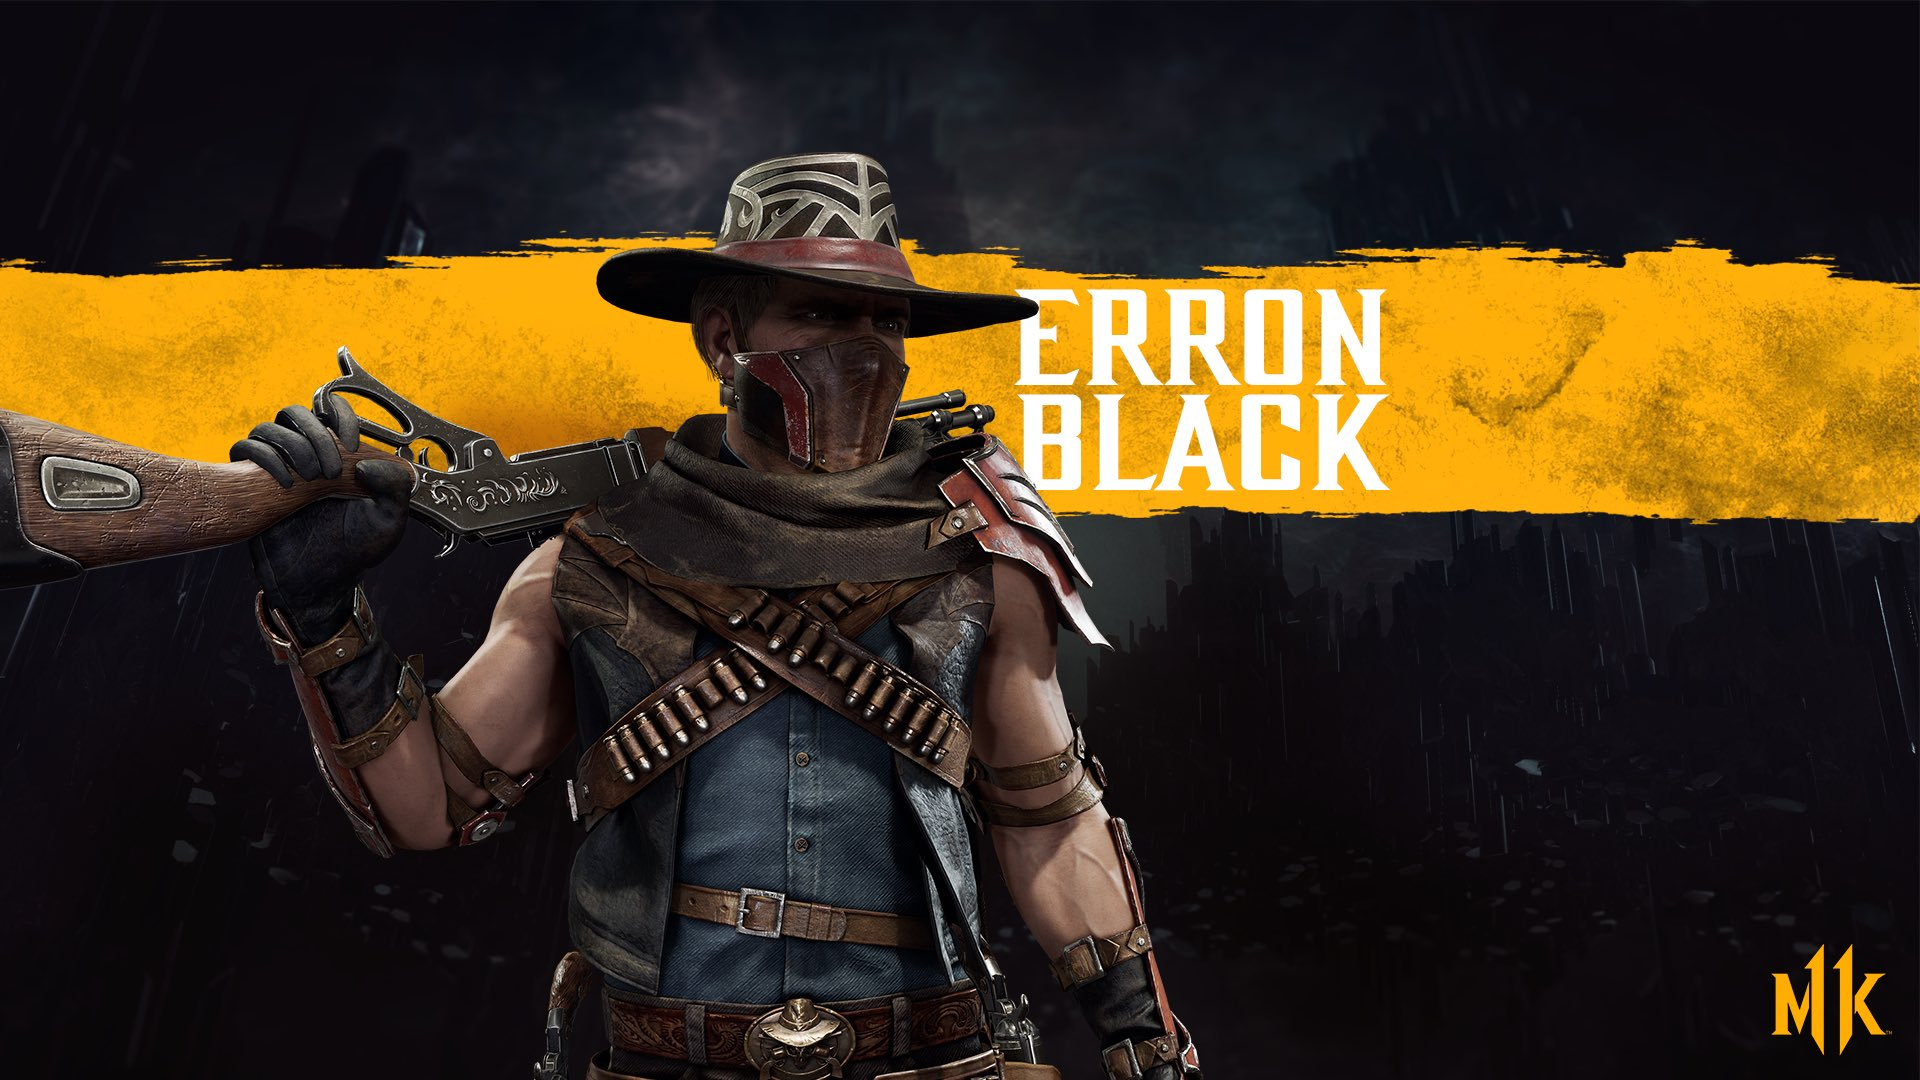 Mortal Kombat 11 background - Erron Black